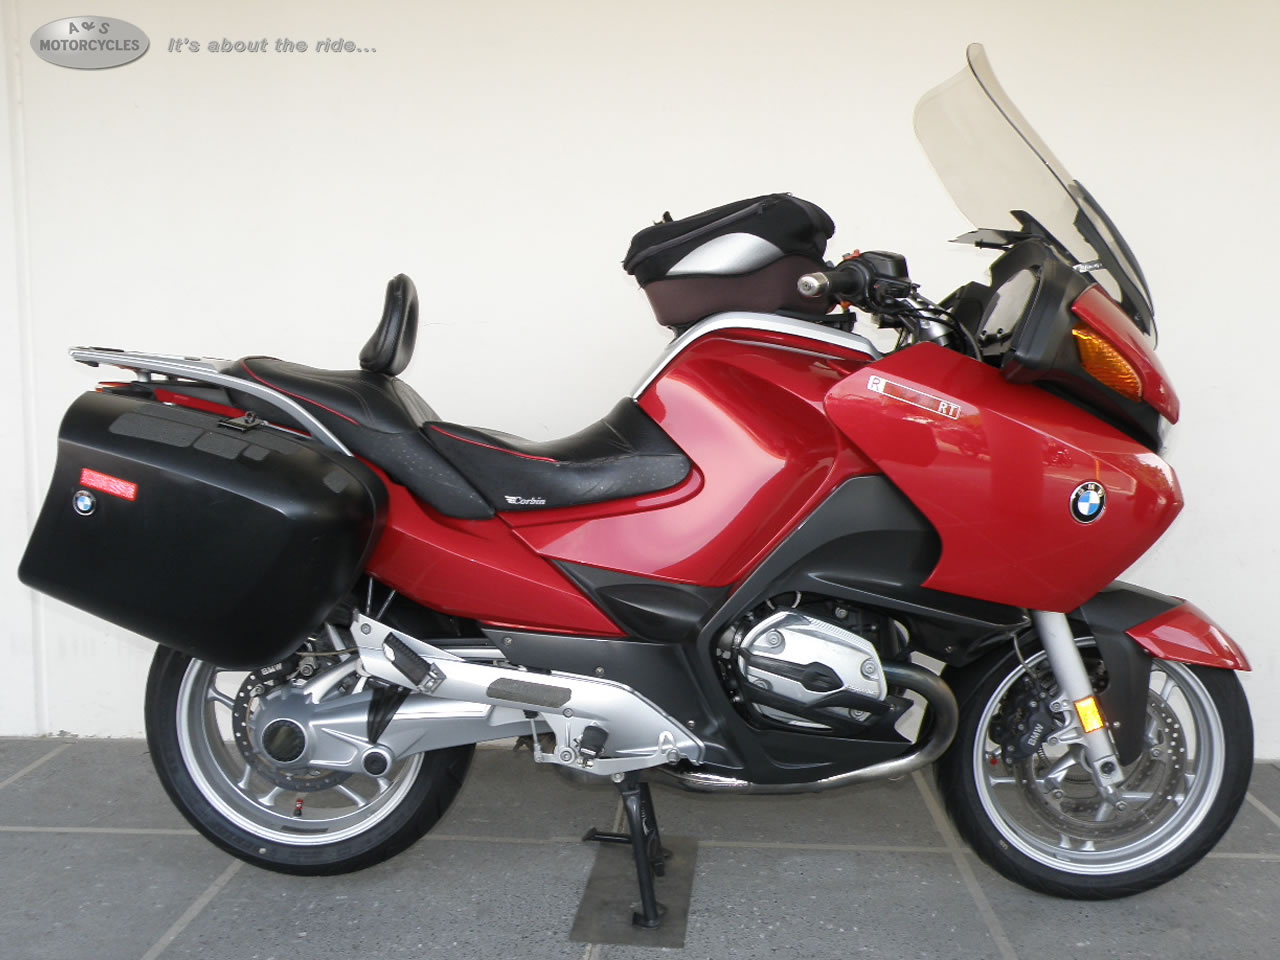 2005 BMW R1200RT, motorcycle listing